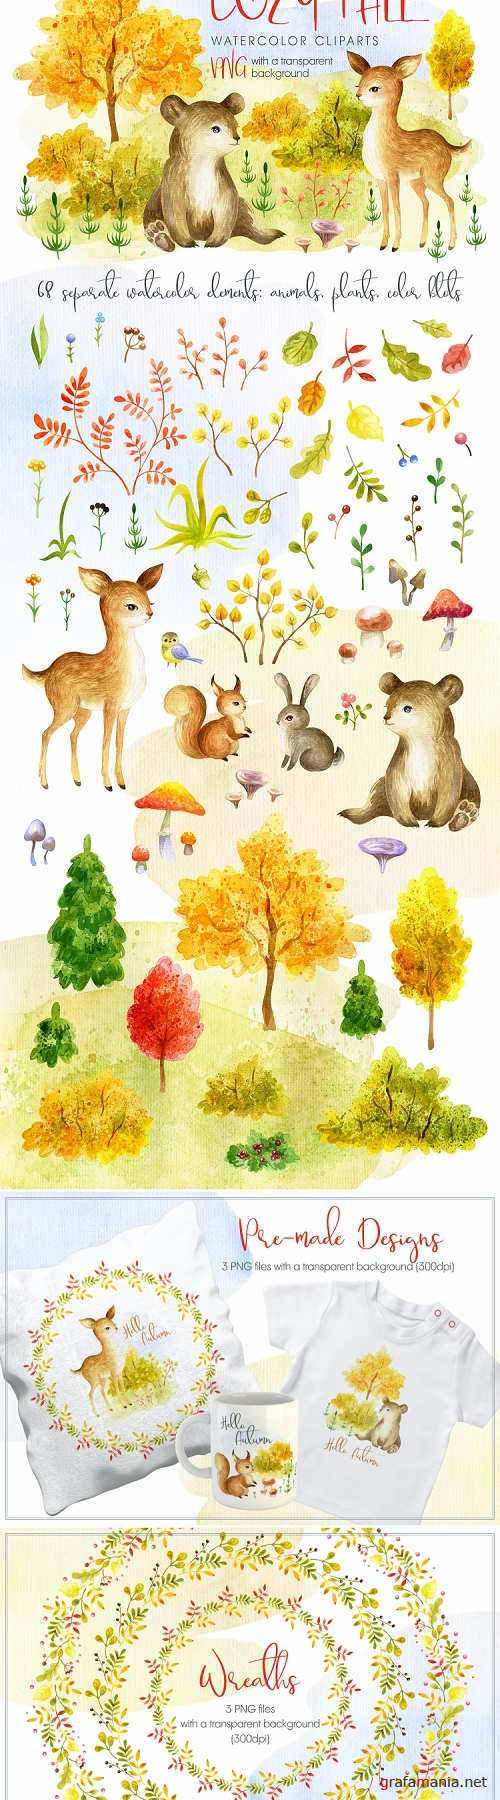 Cozy Fall. Watercolor Animals and Plants - 330849